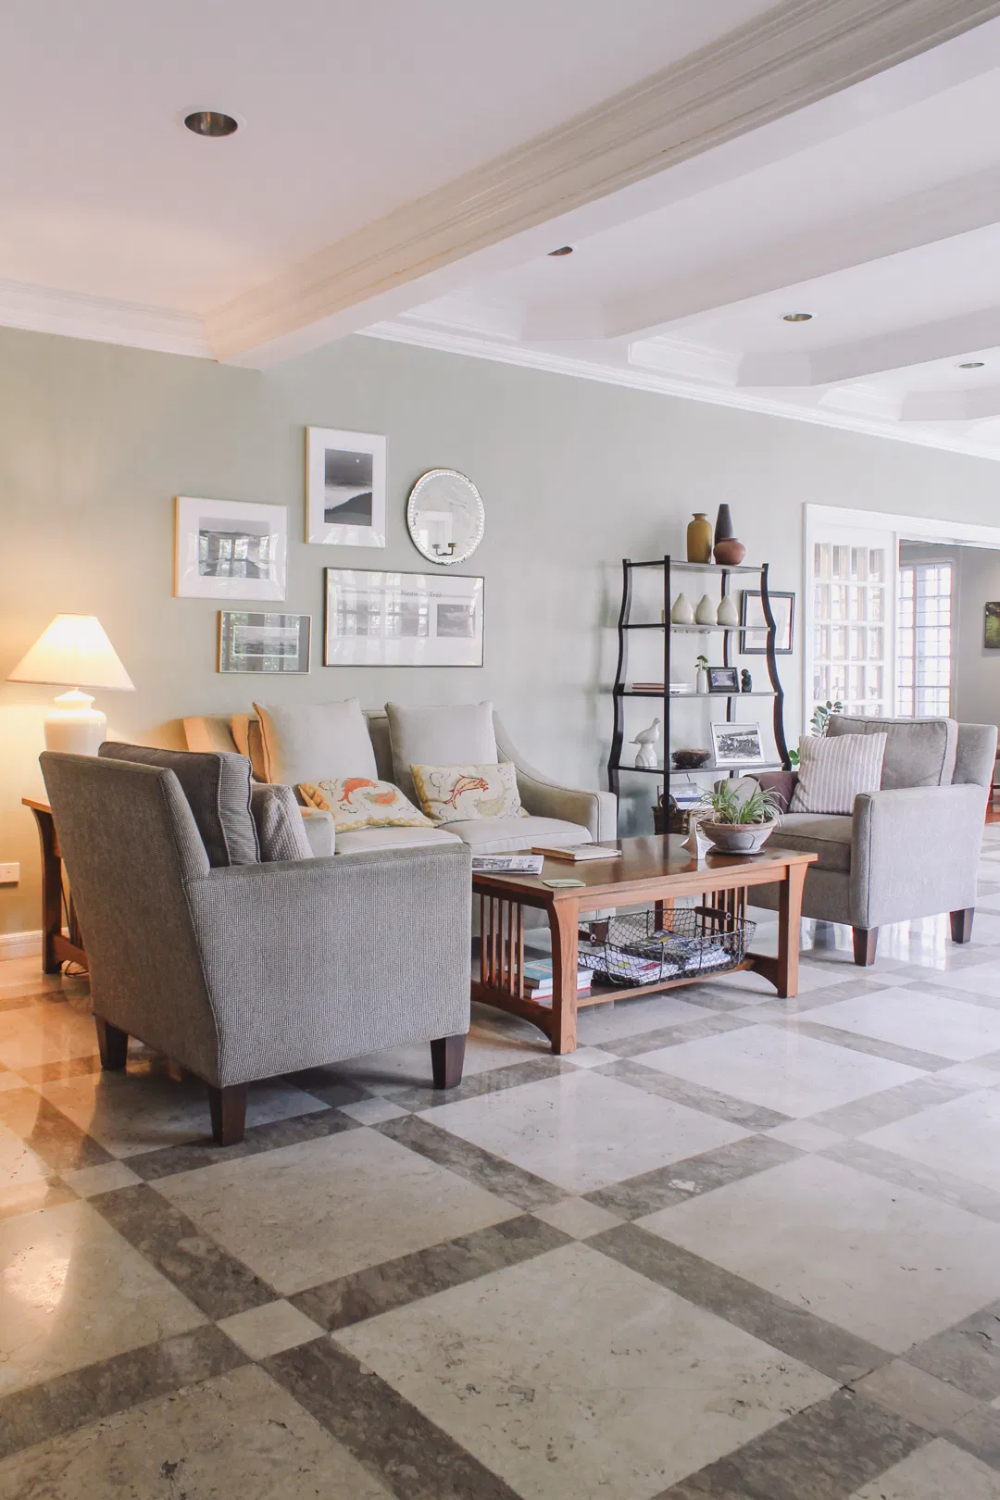 15 Decor Tips To Learn From An American Expat Home In Ma